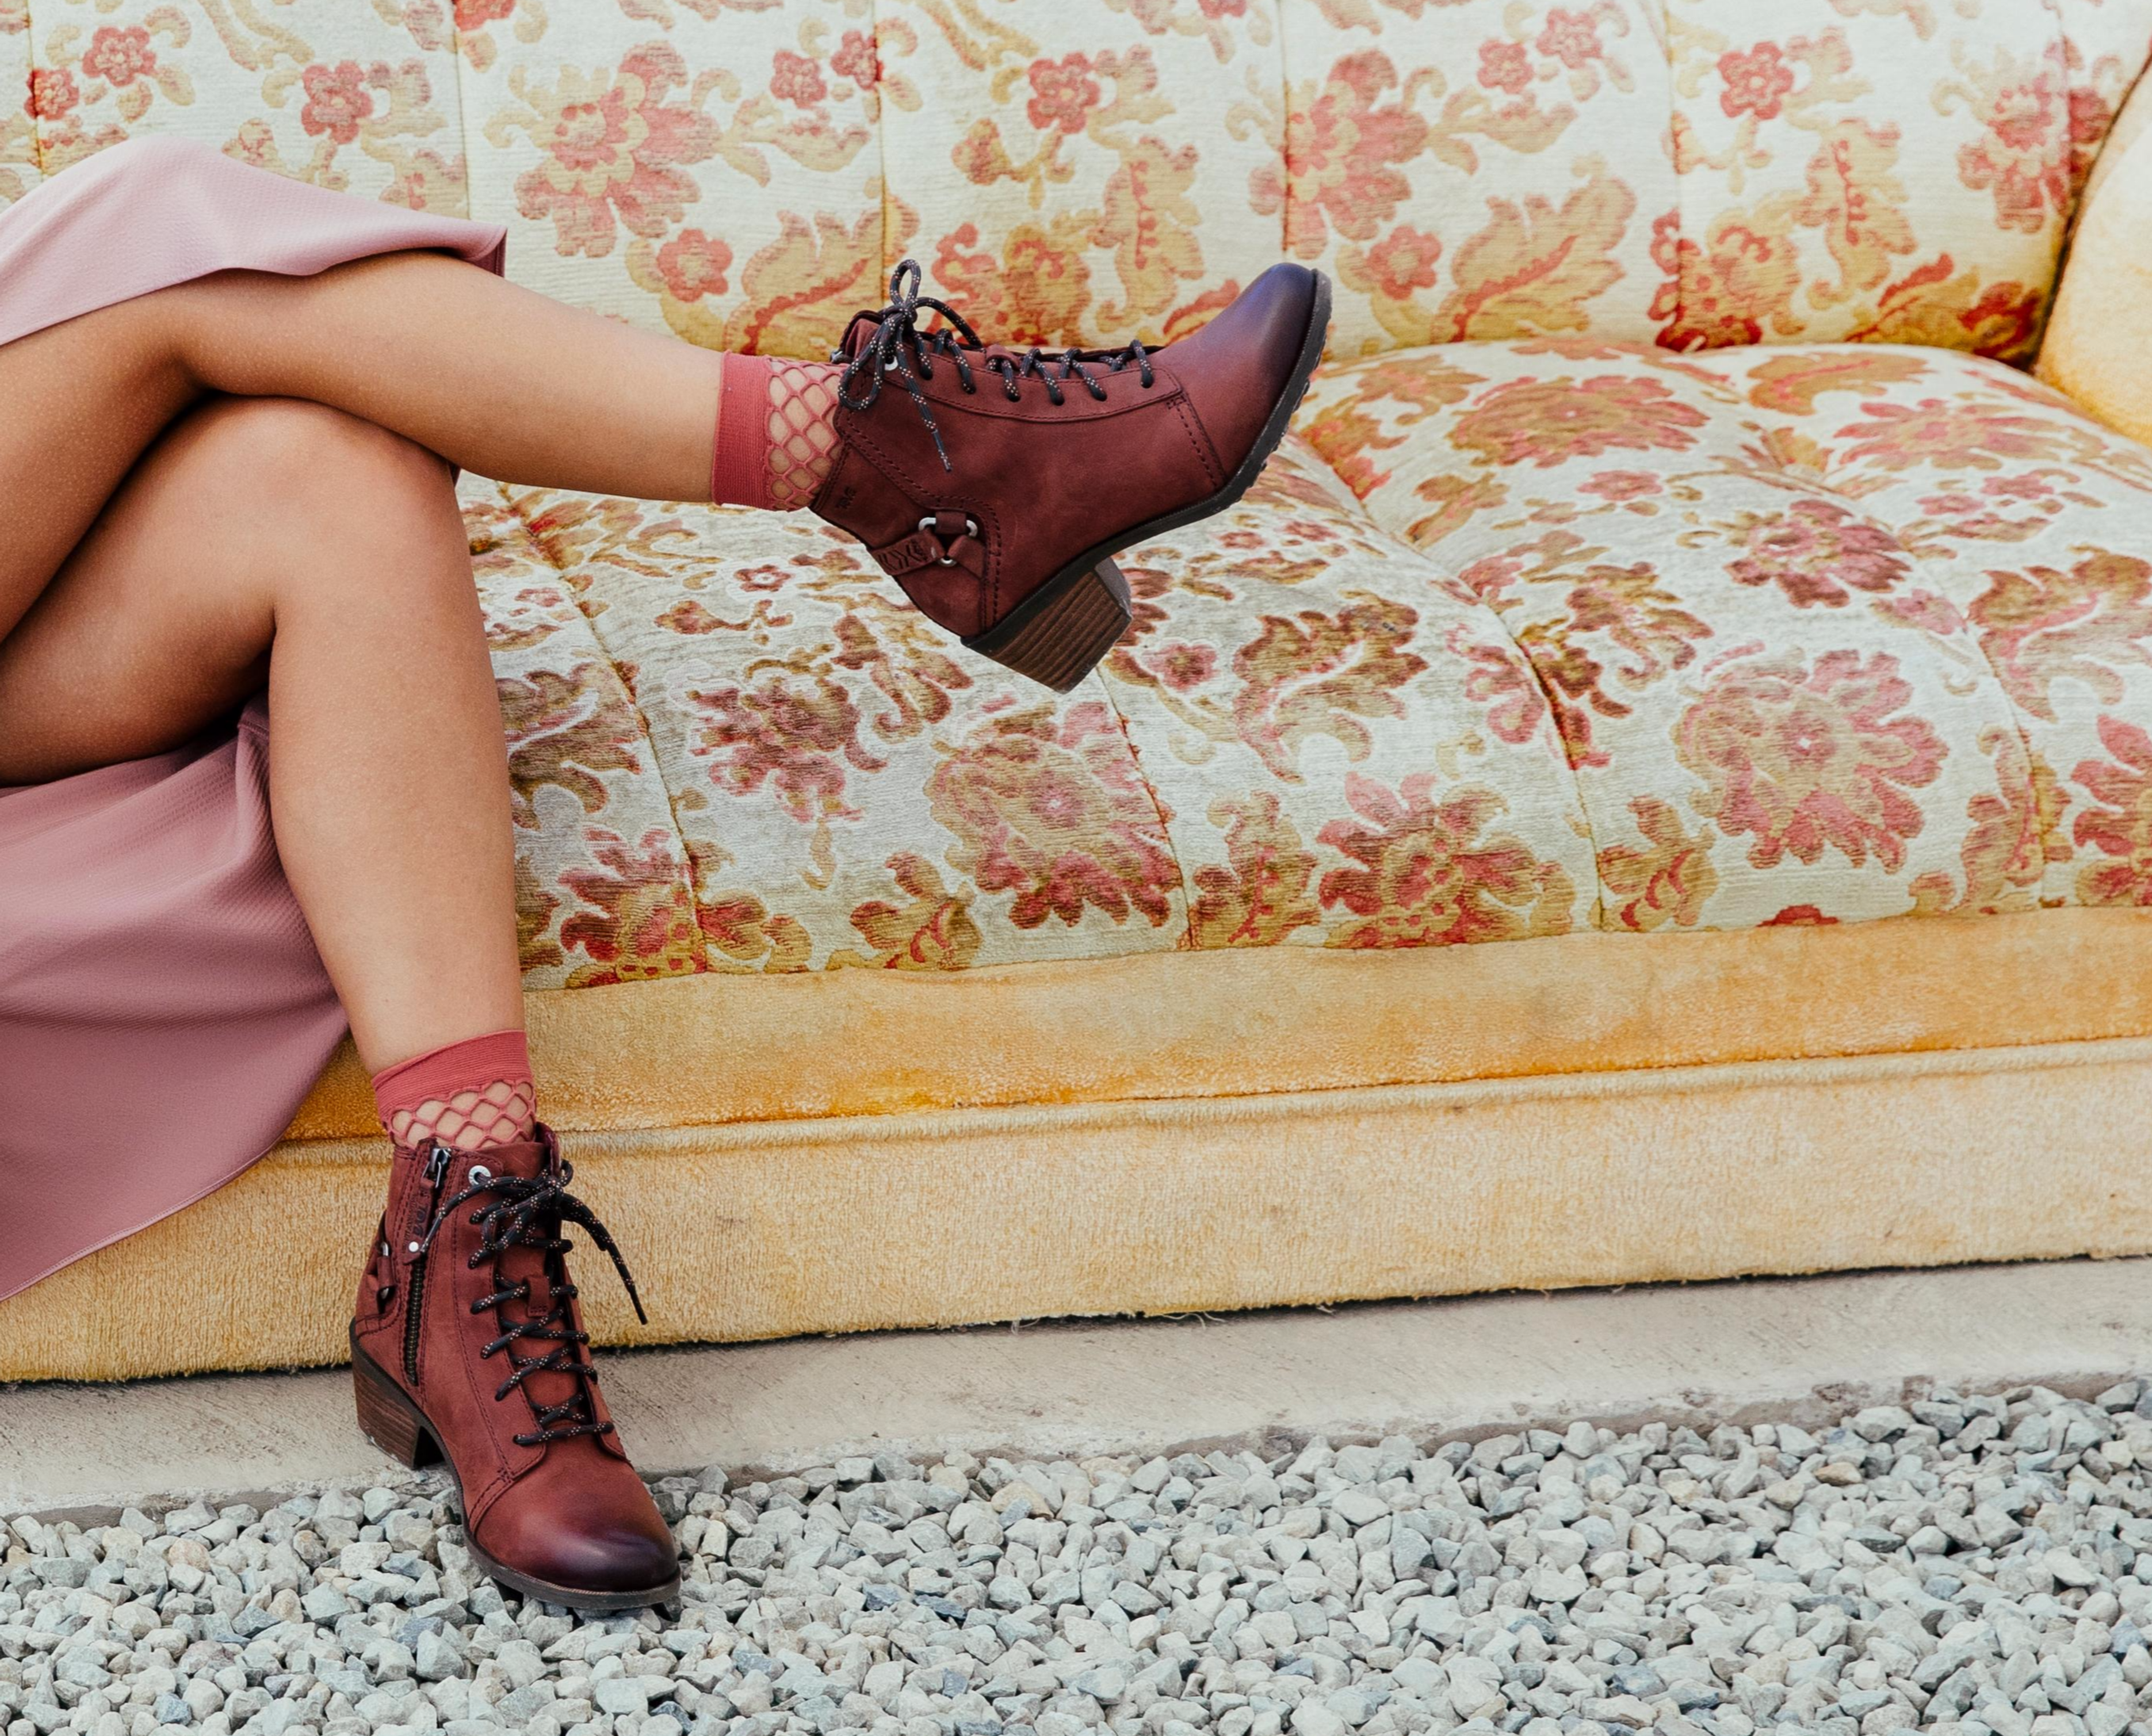 68551f4d7 Because urban adventuring is adventuring nonetheless. Our Foxy Lace WP Boot  is ready to hit the streets and the shops. Check it out now on Teva.com -->